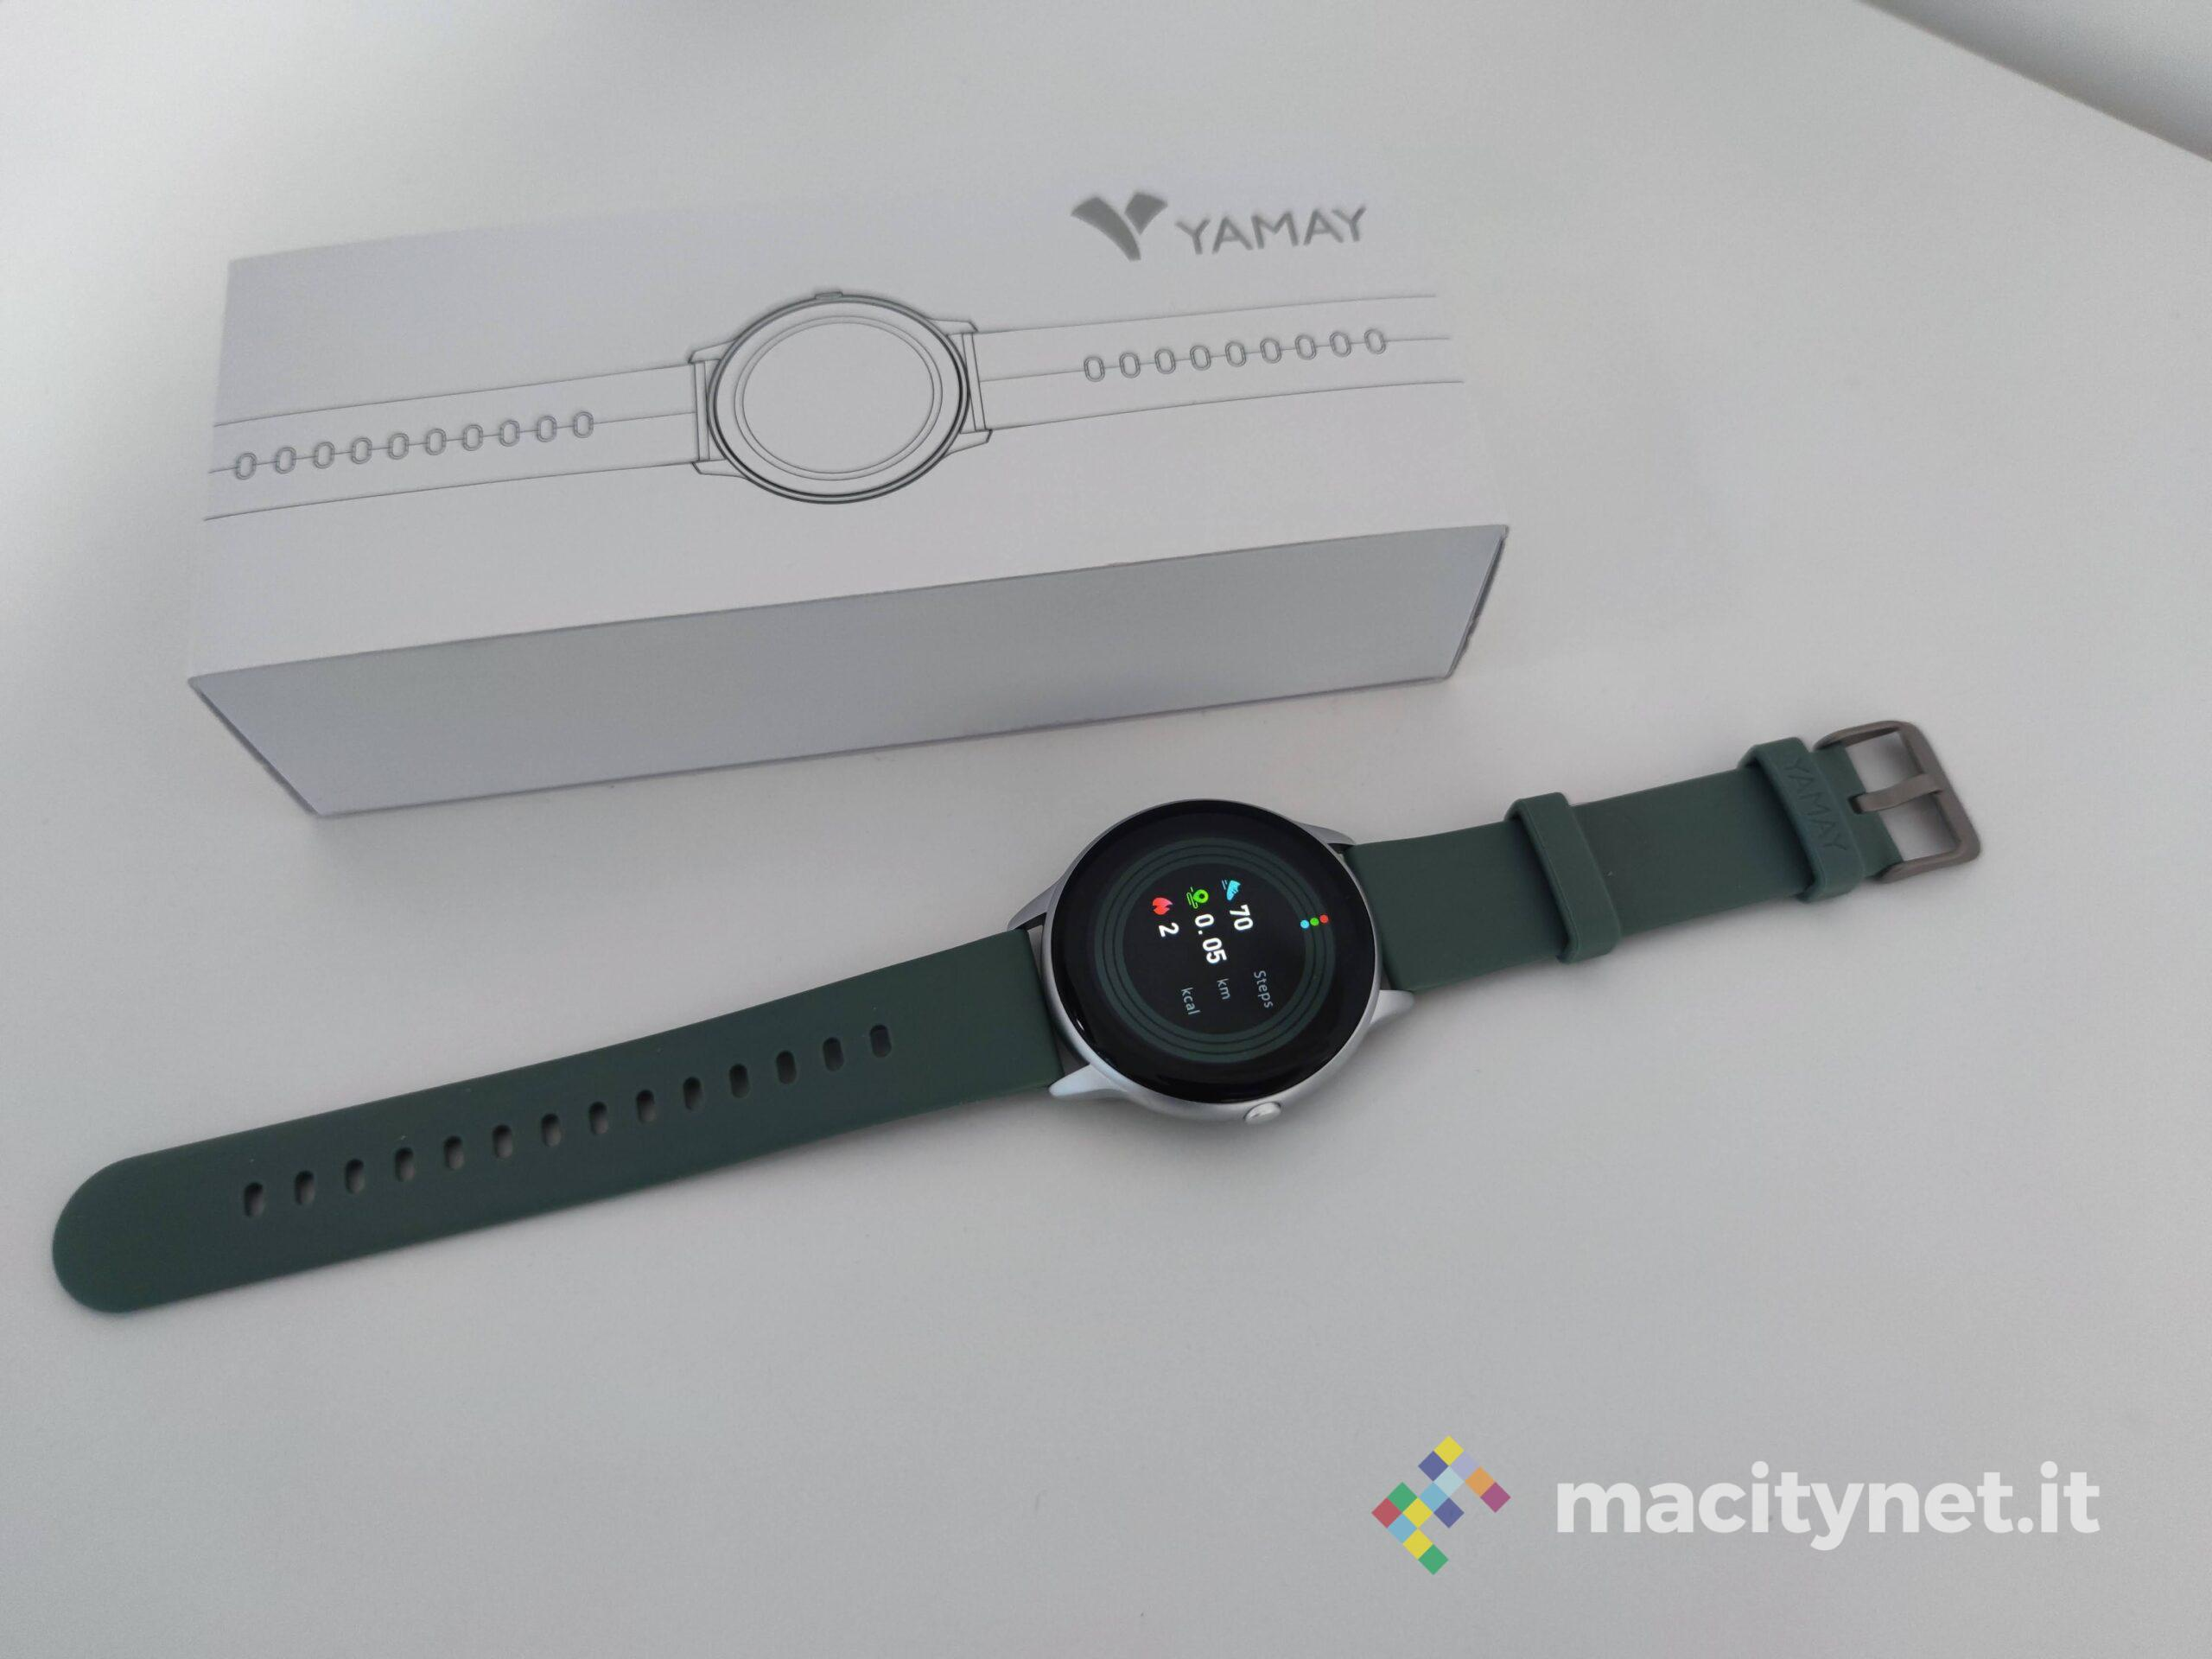 Recensione smartwatch Yamay